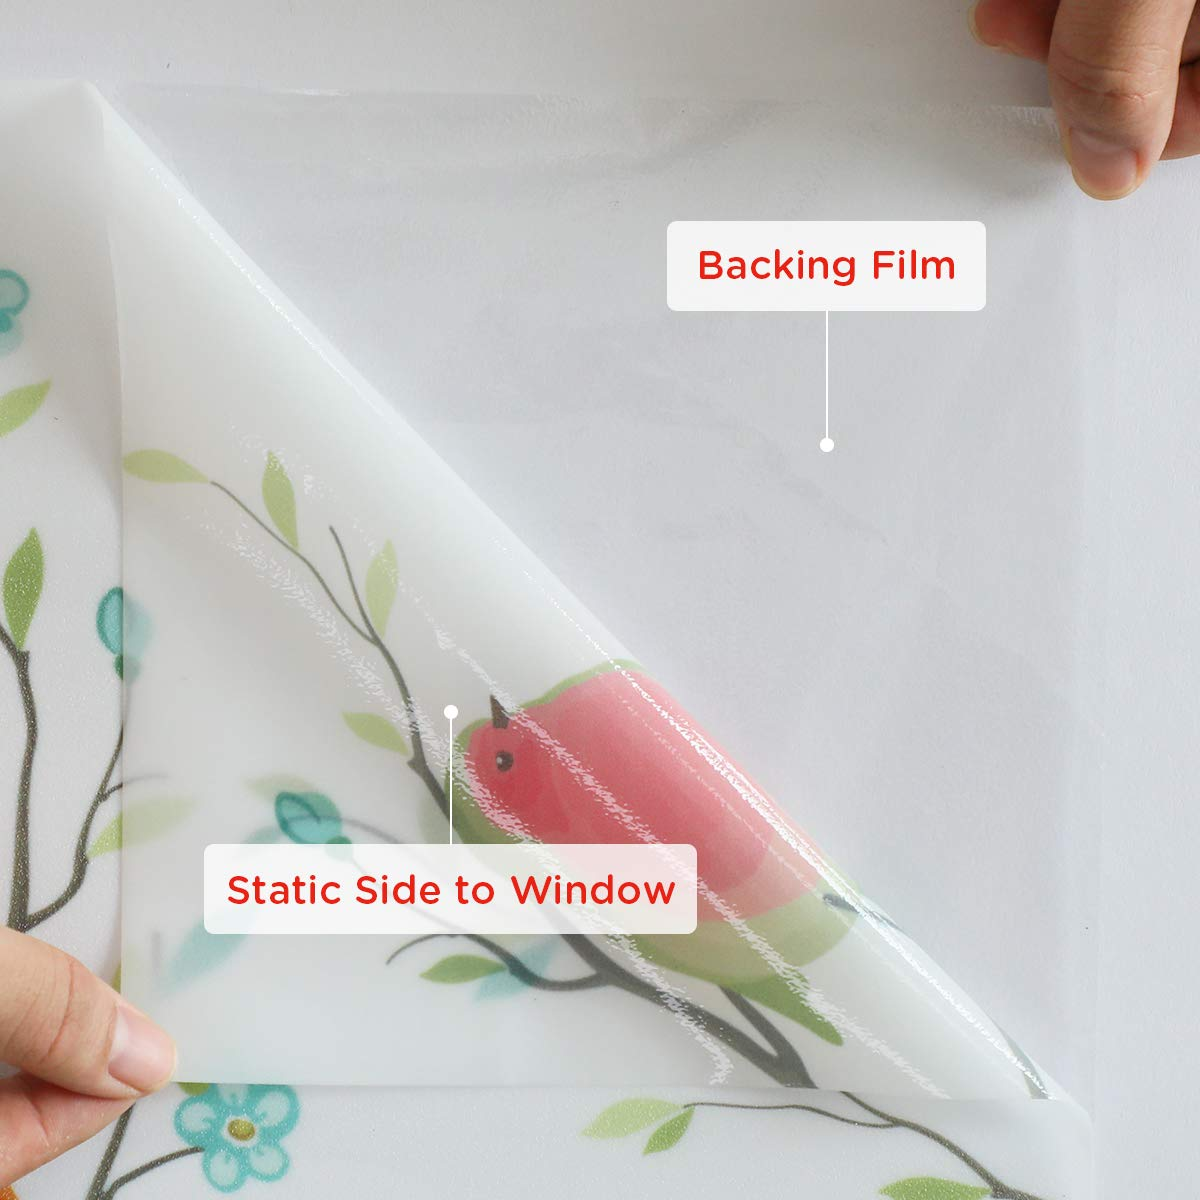 Coavas Privacy Window Film Non-Adhesive Frosted Bird Window Film Decorative Glass Film Static Cling Film Bird Window Stickers for GF-WF-90-2B Home Office 35In. by 78.7In. (90 x 200Cm) by Coavas (Image #2)